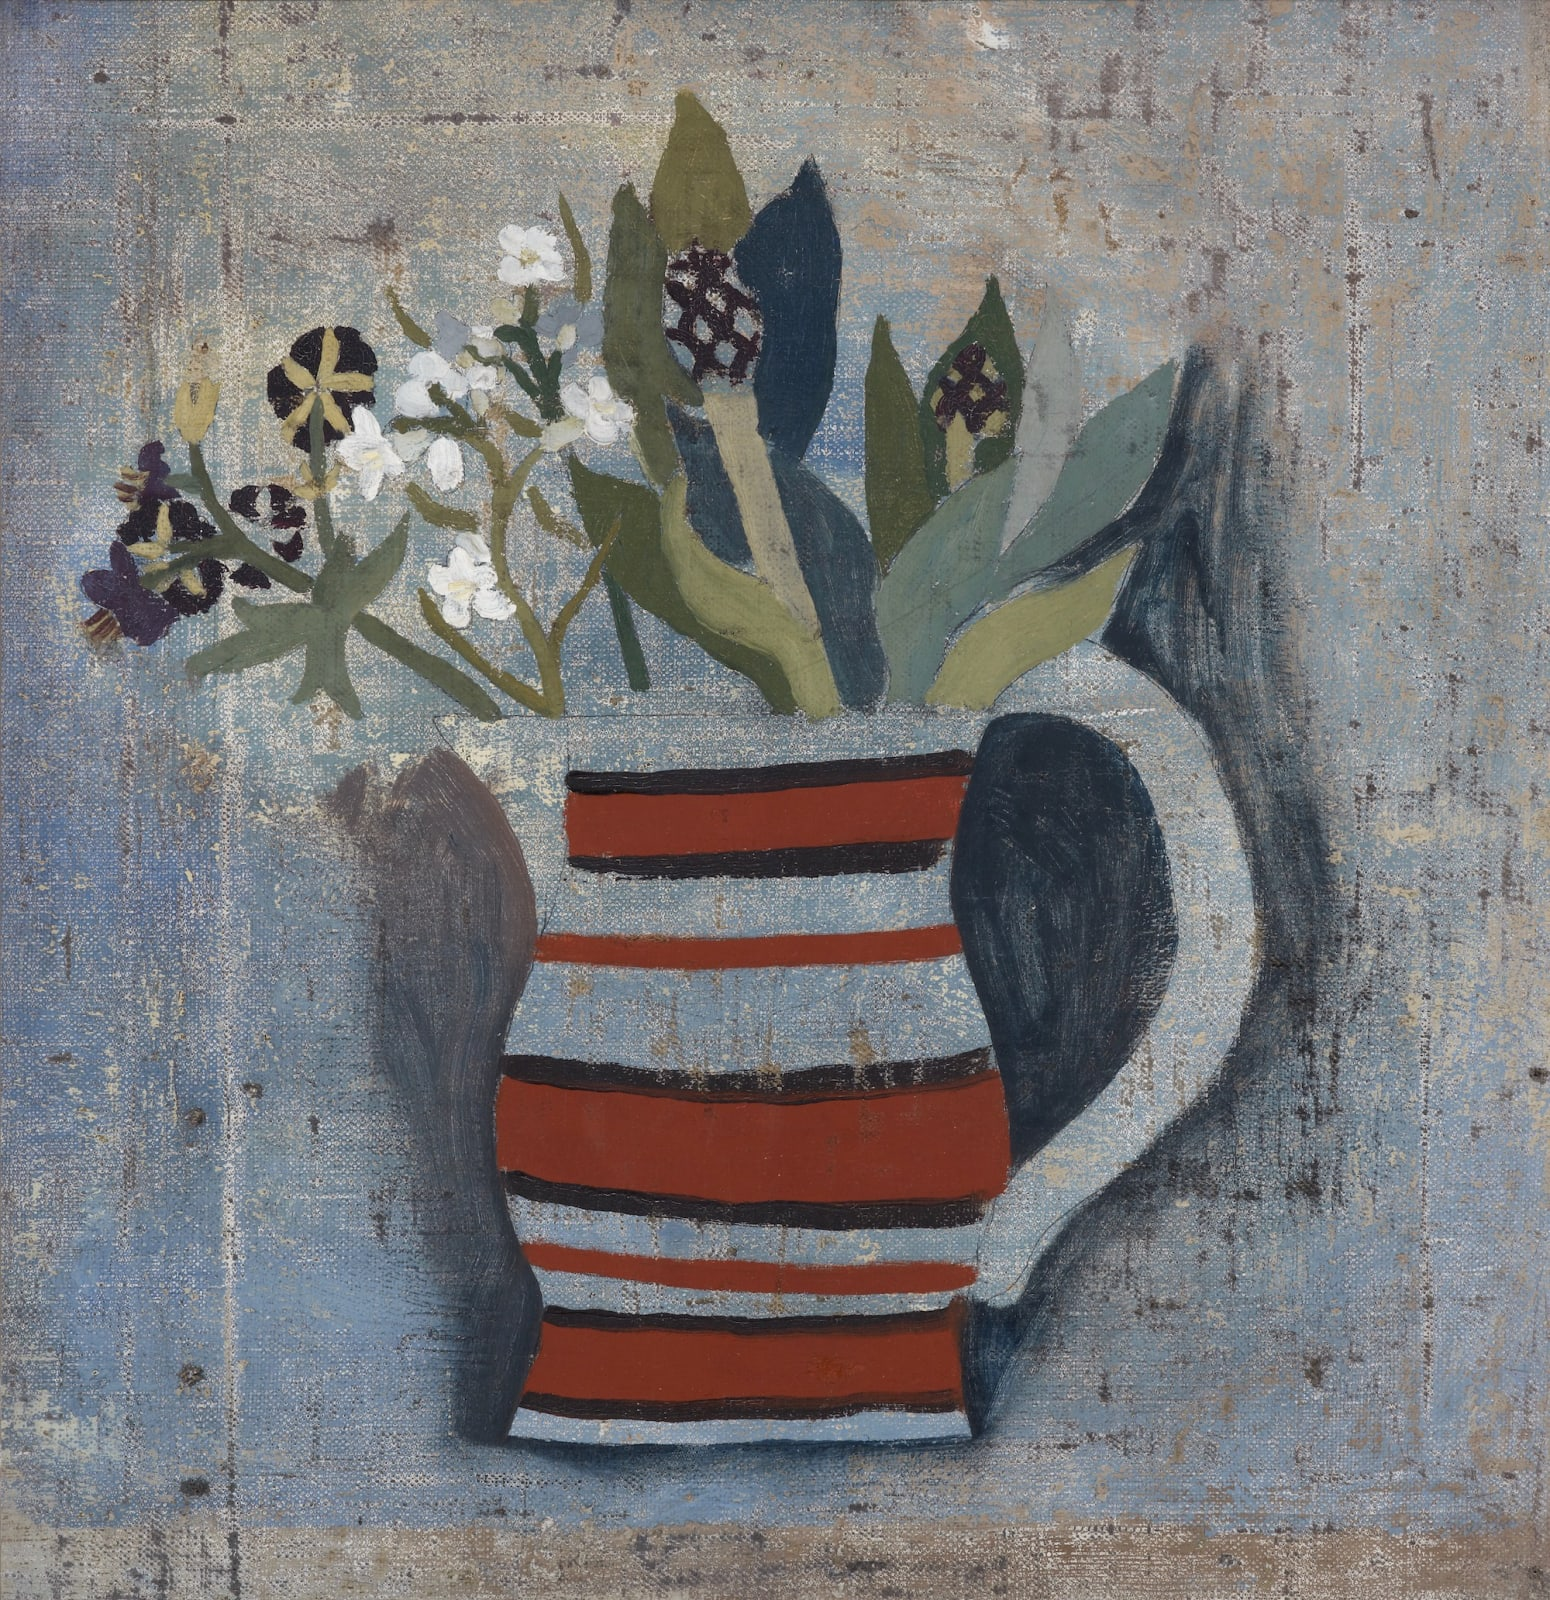 Ben Nicholson, 1928 (Striped Jug and Flowers), 1928